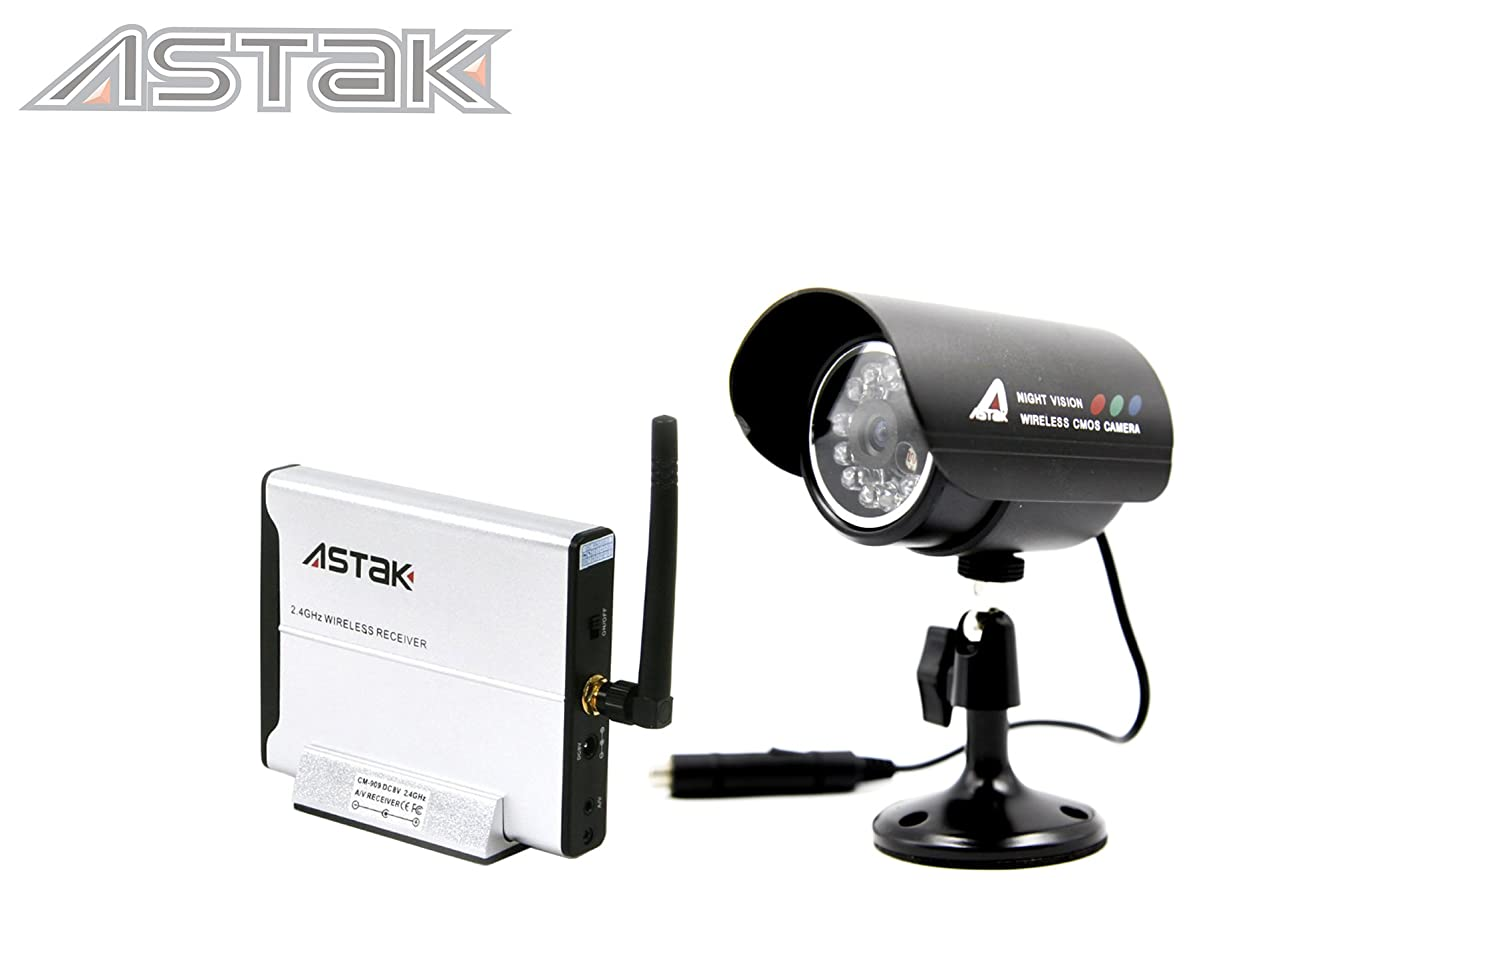 Astak 2.4GHz Wireless Color Security Surveillance Cameras Day/Night Vision  Video IR Waterproof Cameras CCTV System with Receiver Box & CMOS Sensors,  ...